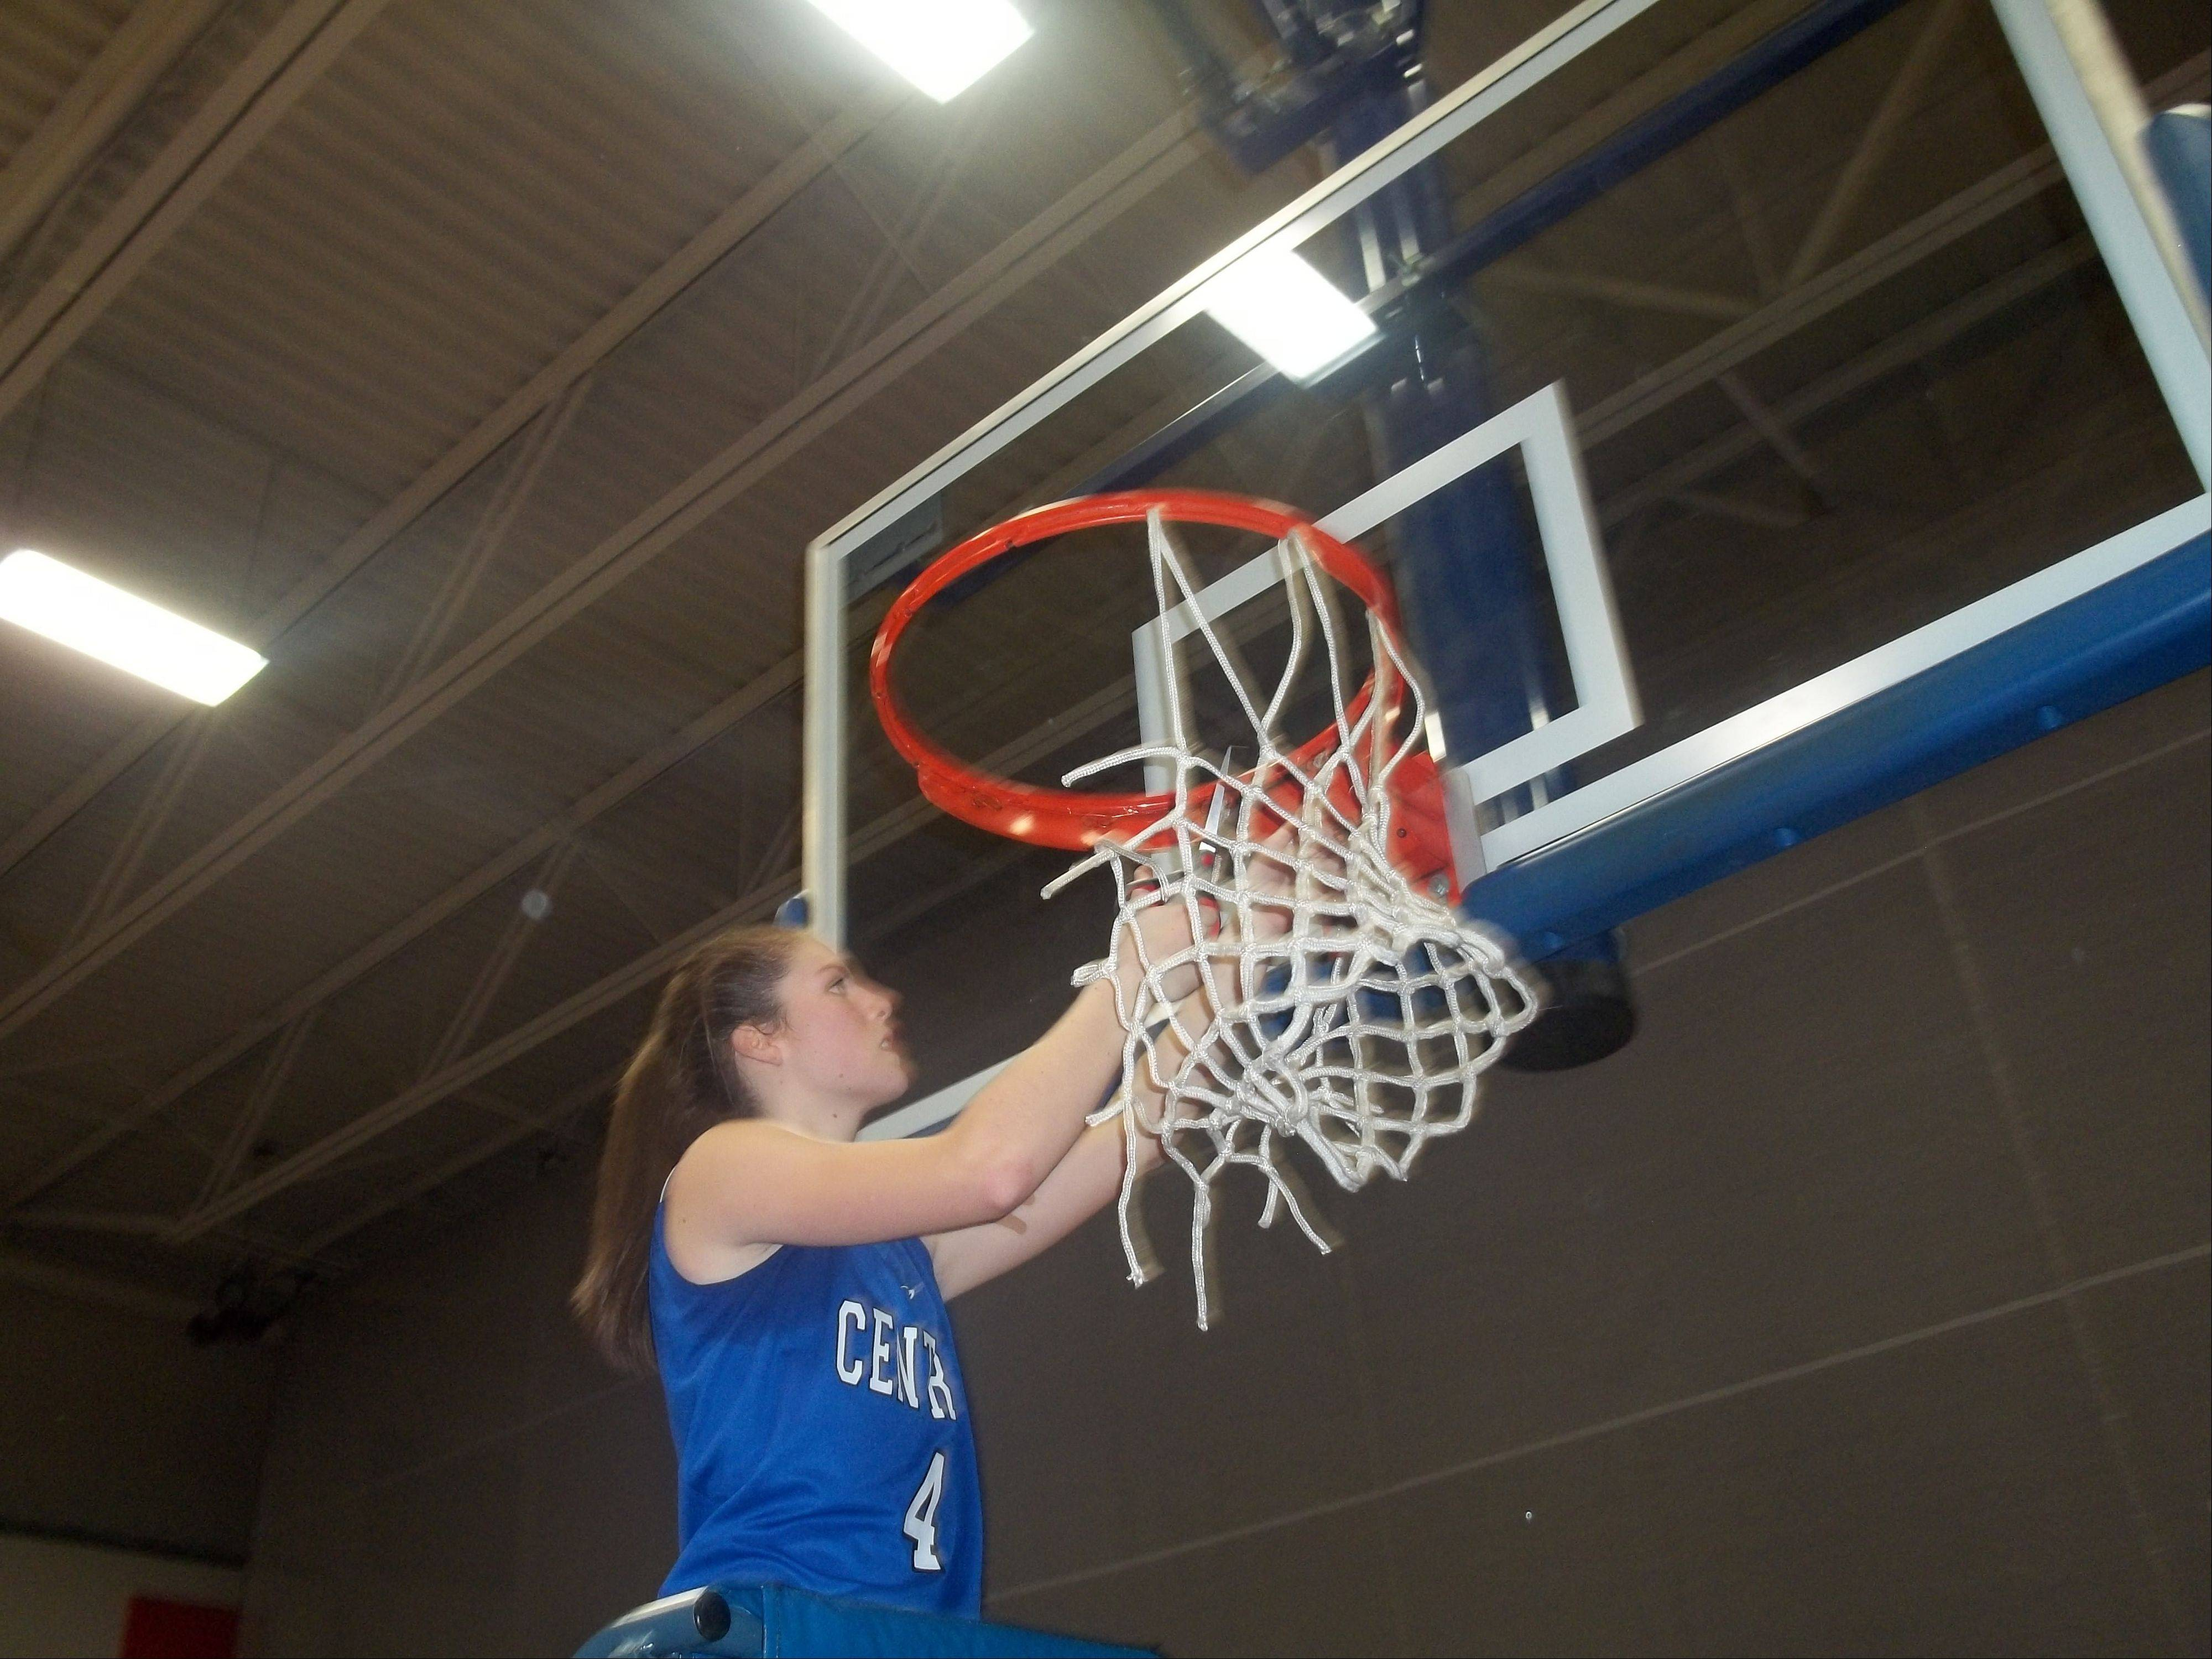 Burlington Central freshman Kayla Ross cuts a piece of the net Thursday after the Rockets� 49-26 win over Sterling in the Class 3A Genoa-Kingston sectional championship game.